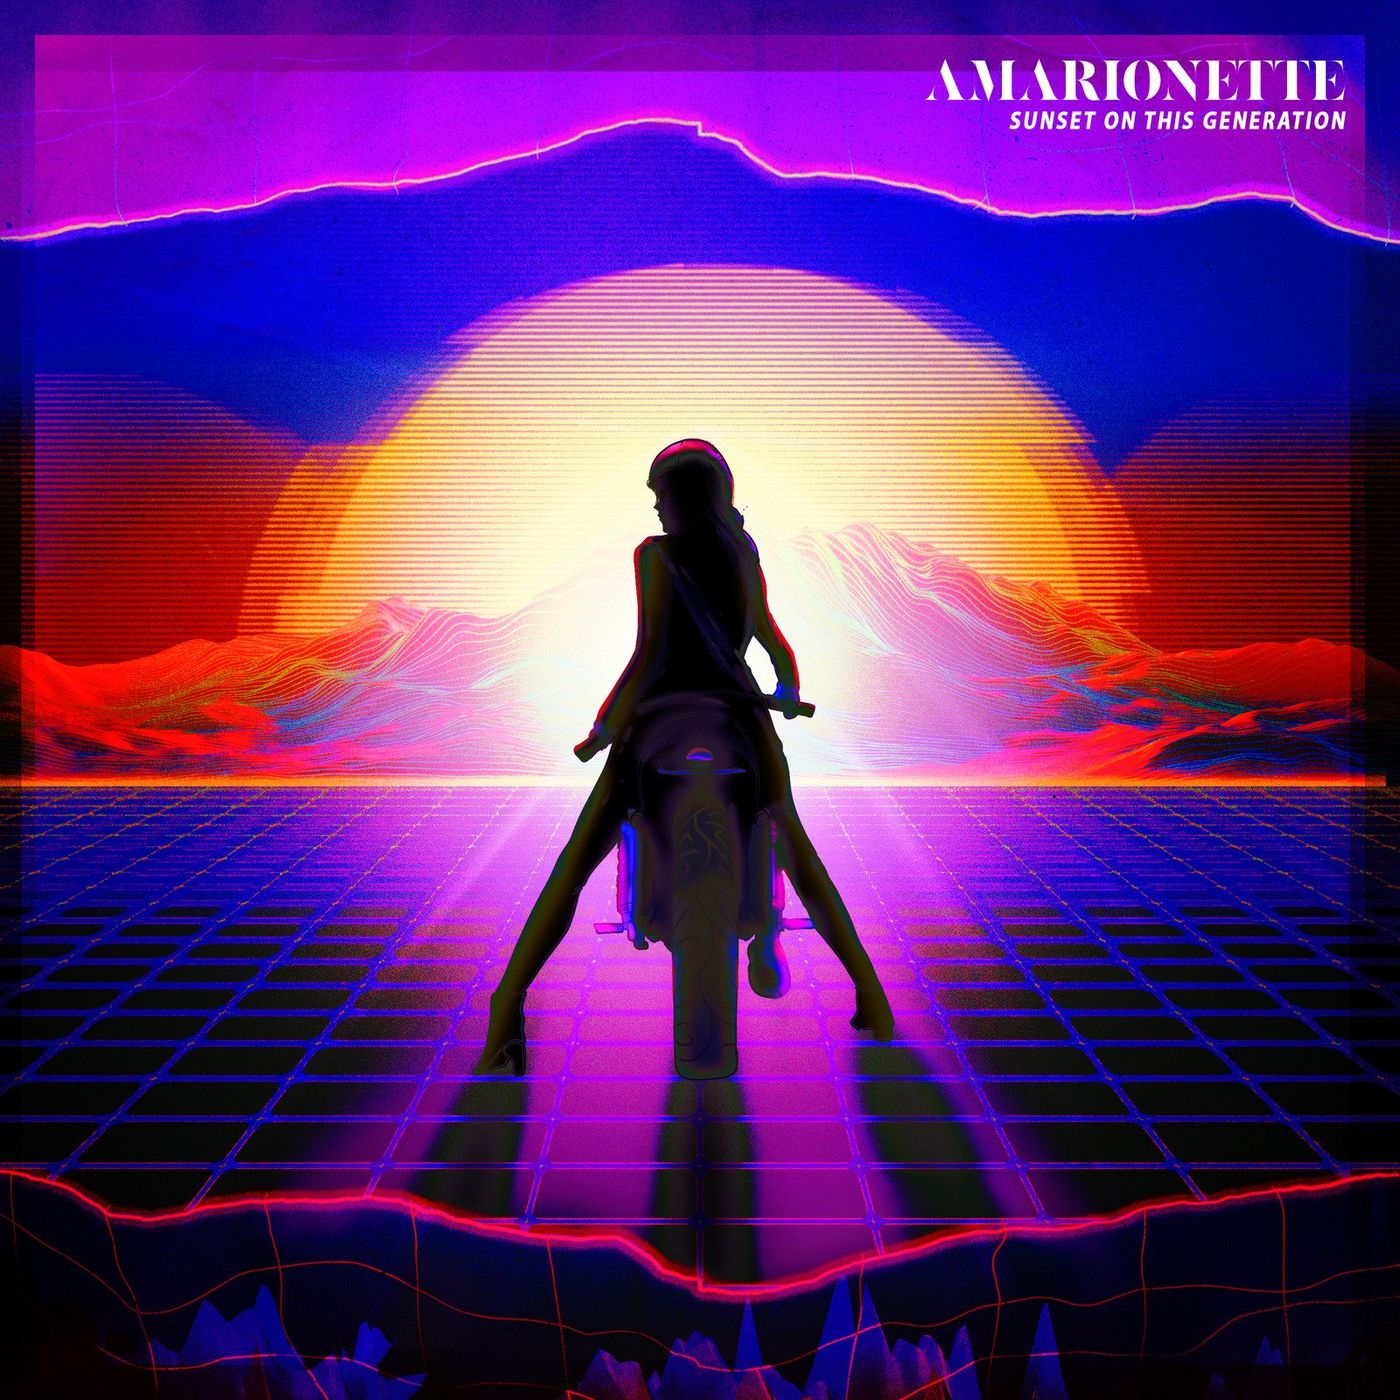 Amarionette - Sunset on This Generation (2020)